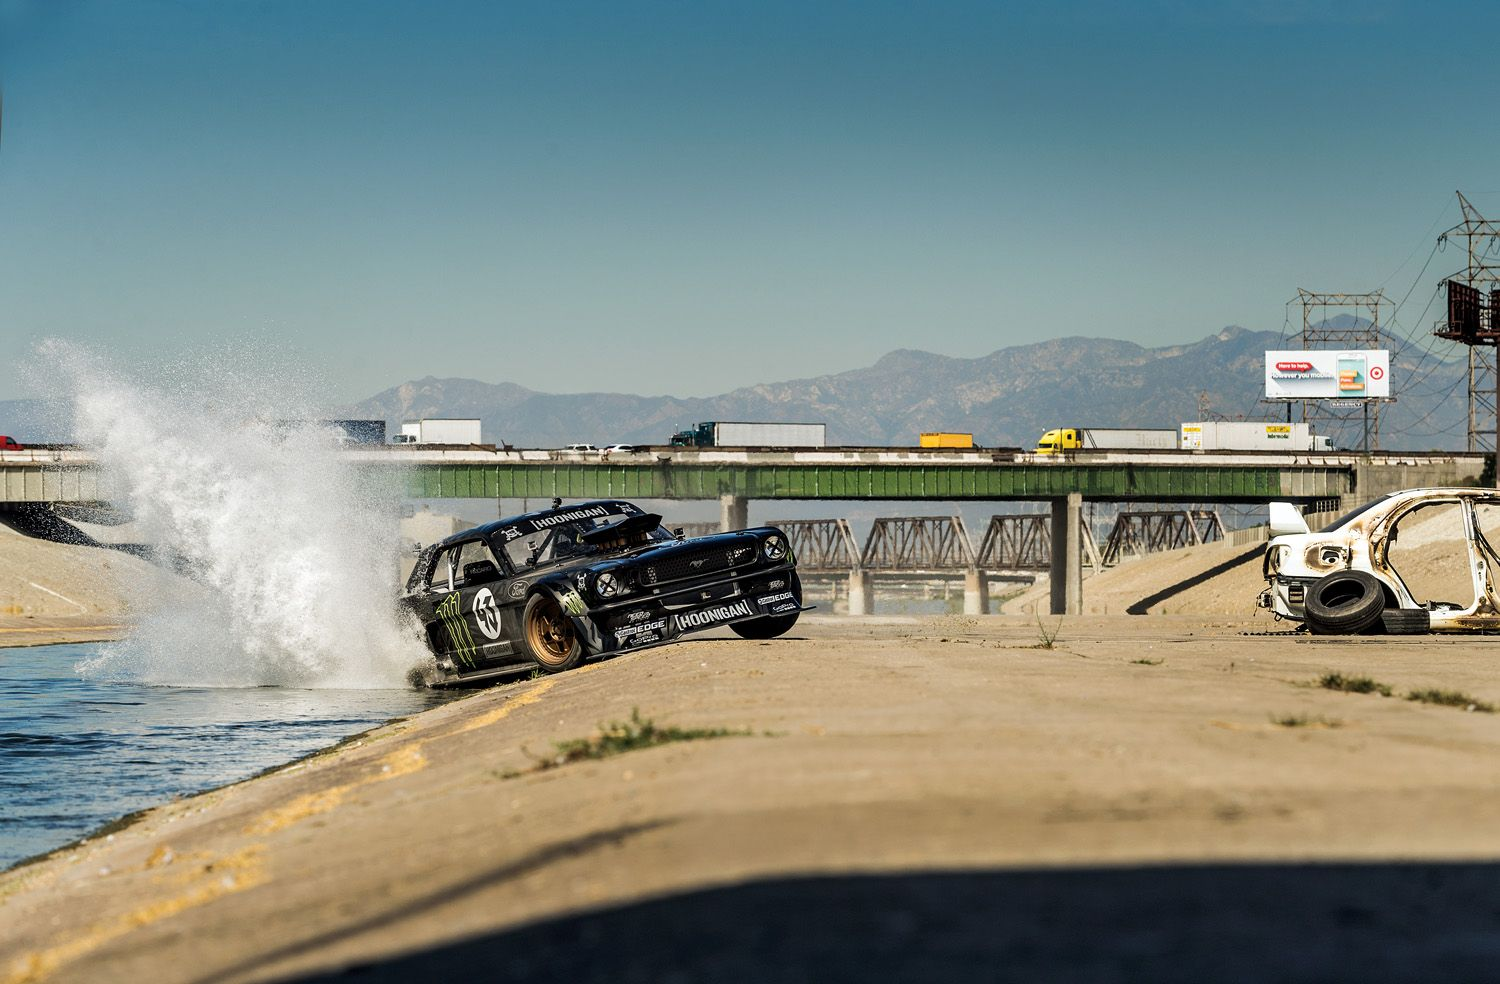 La Derni 232 Re Vid 233 O De Ken Block En Mustang Dans Los Angeles